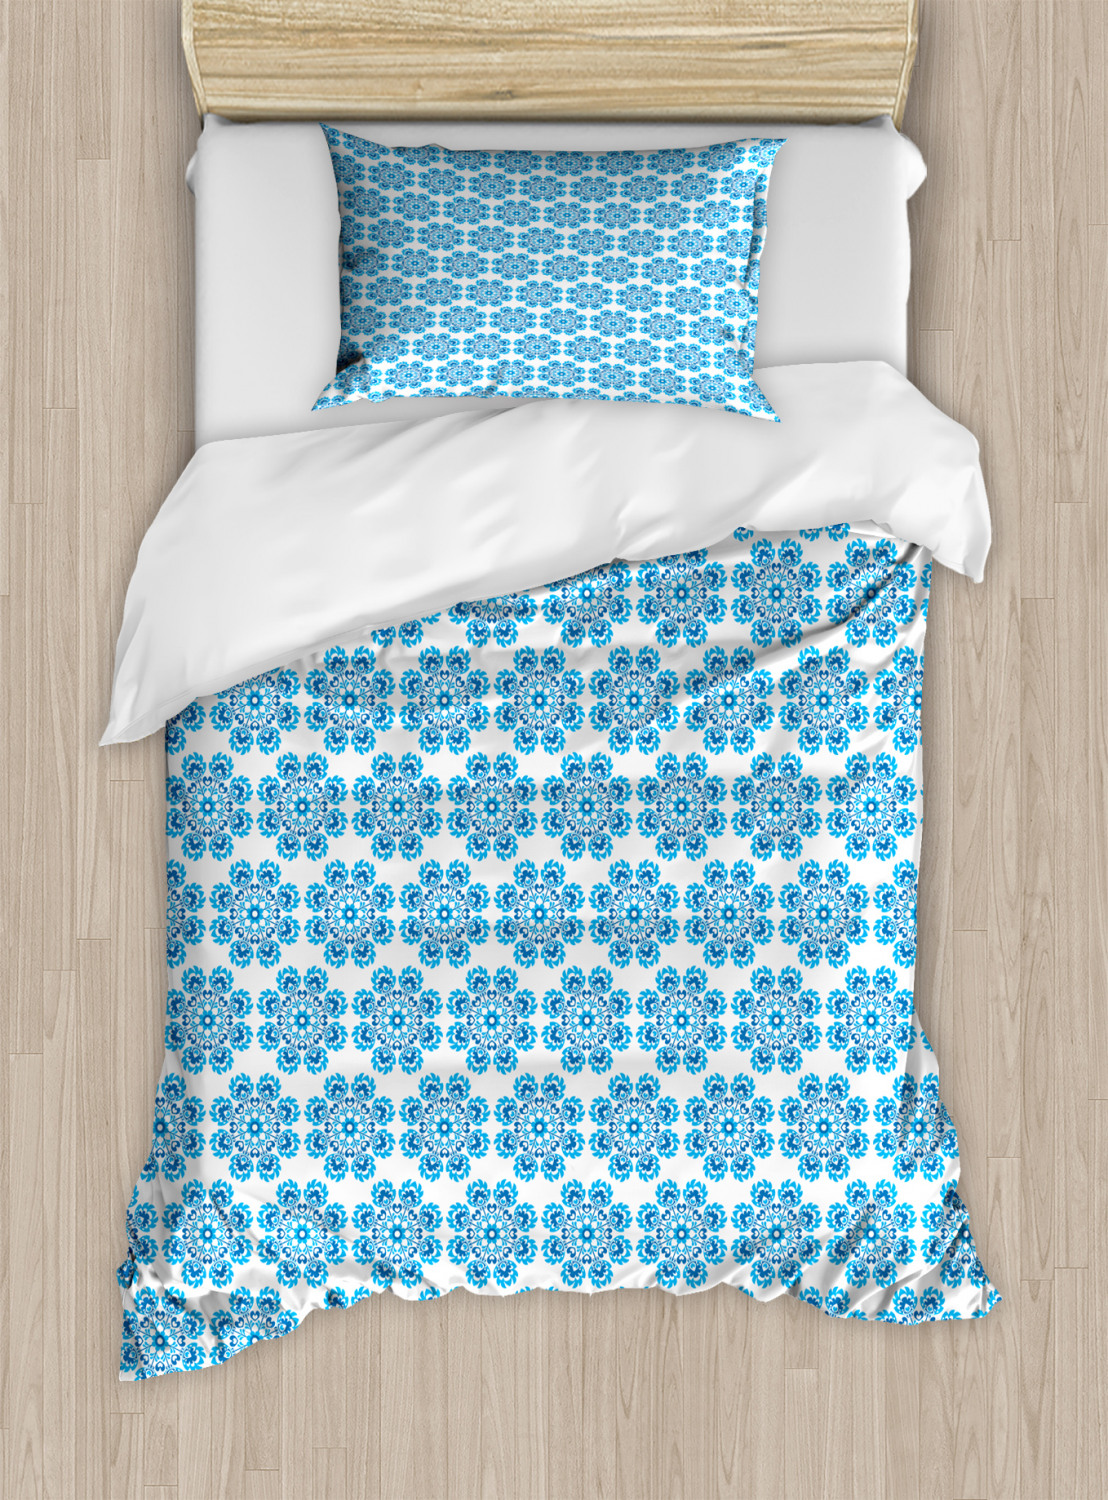 Timeless-Oriental-Duvet-Cover-Set-Twin-Queen-King-Sizes-with-Pillow-Shams thumbnail 7